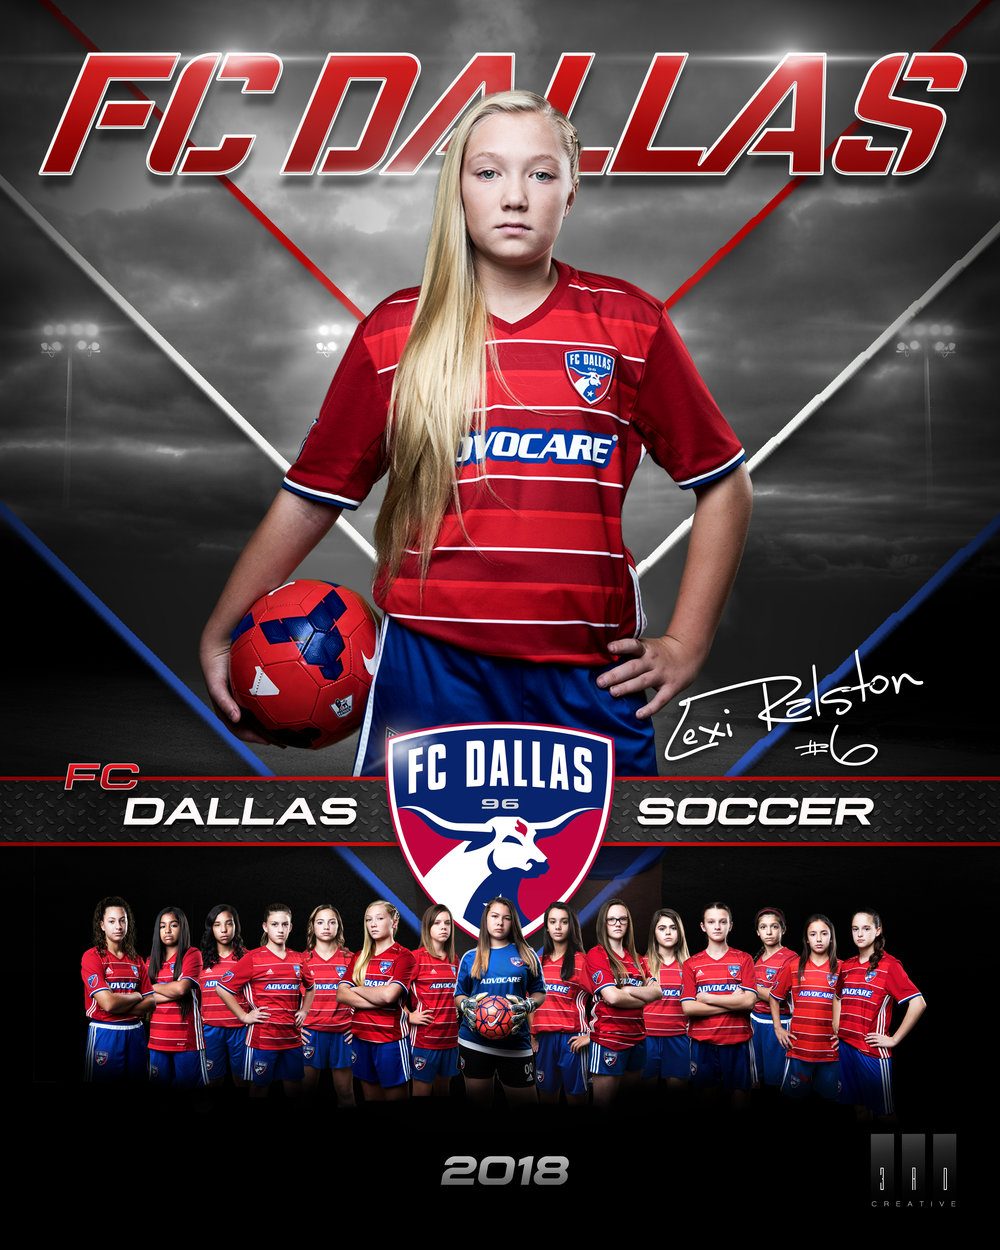 Big_Pasture_FCDallas_Team_Ind_16x20.jpg